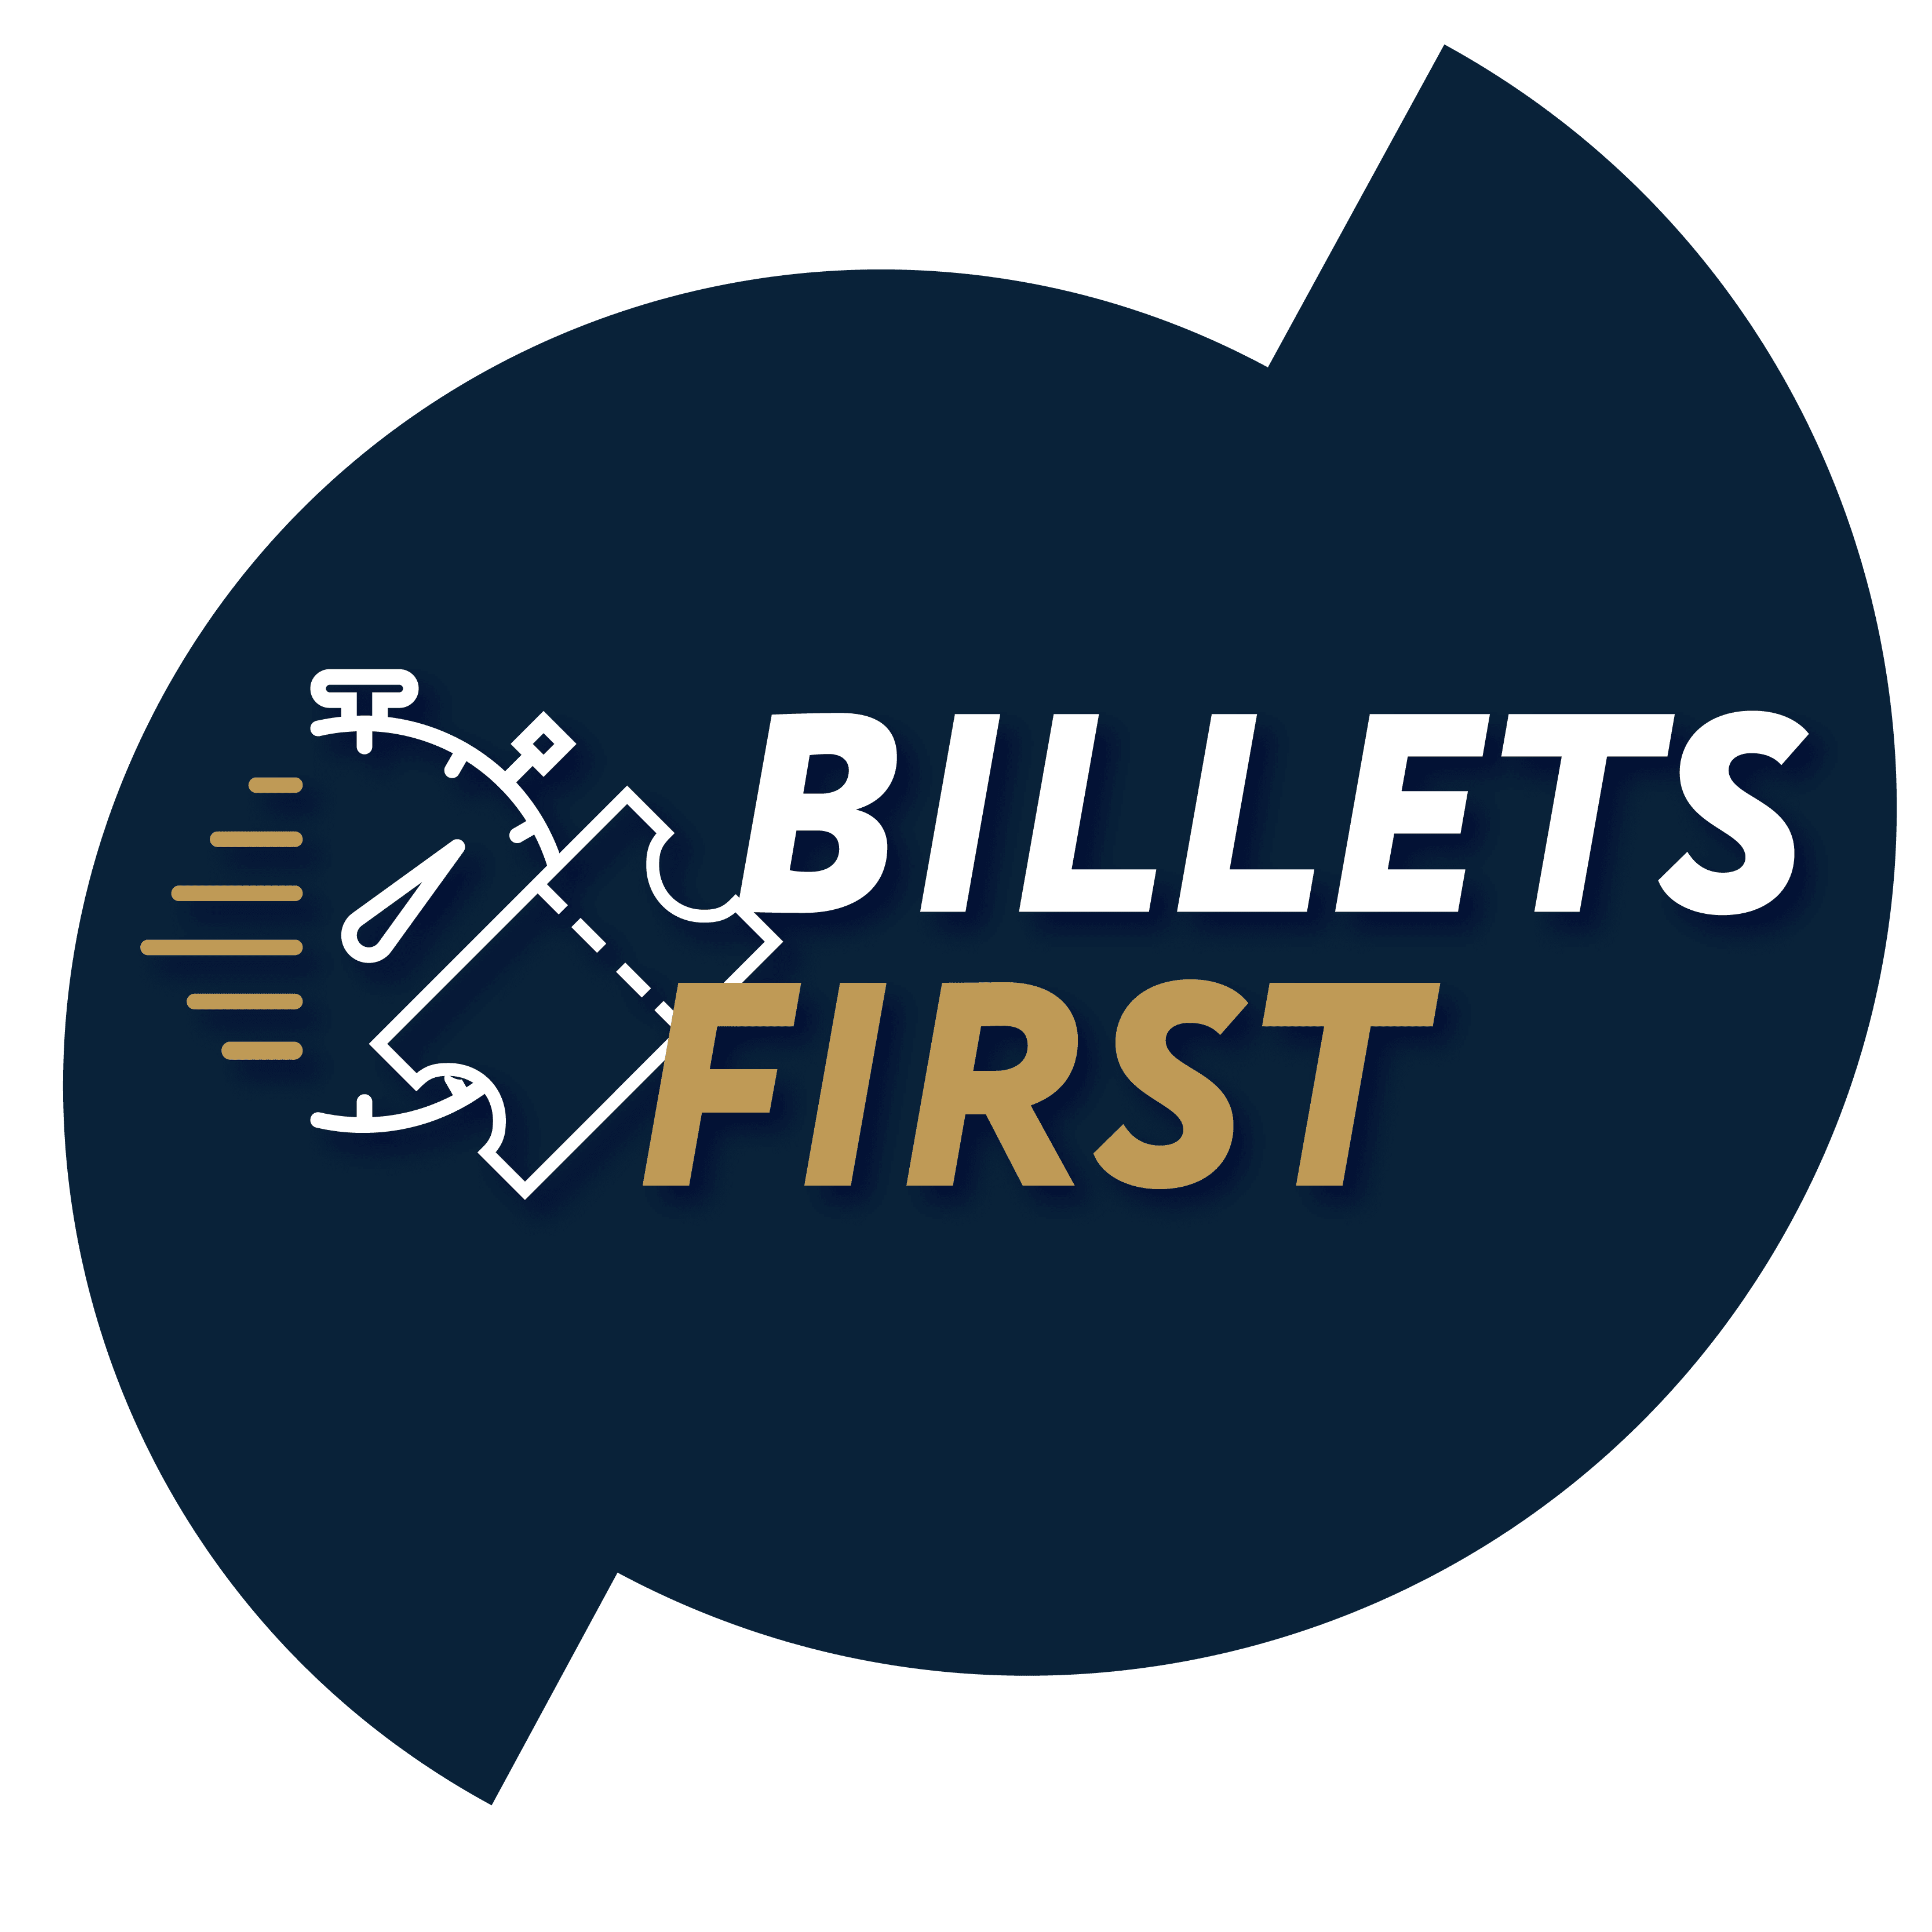 Billets first